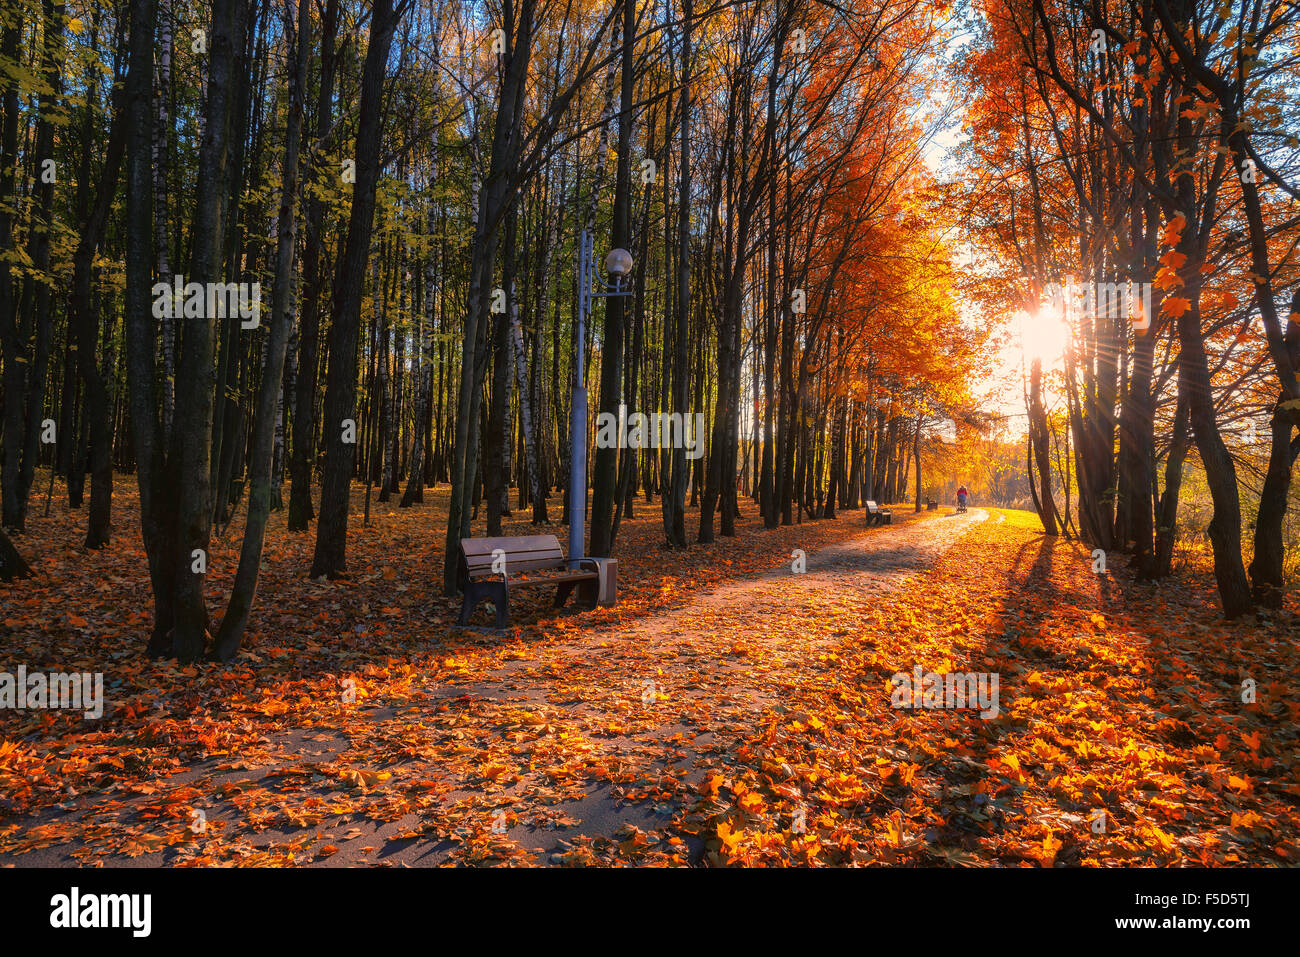 Colorful foliage in the autumn park - Stock Image